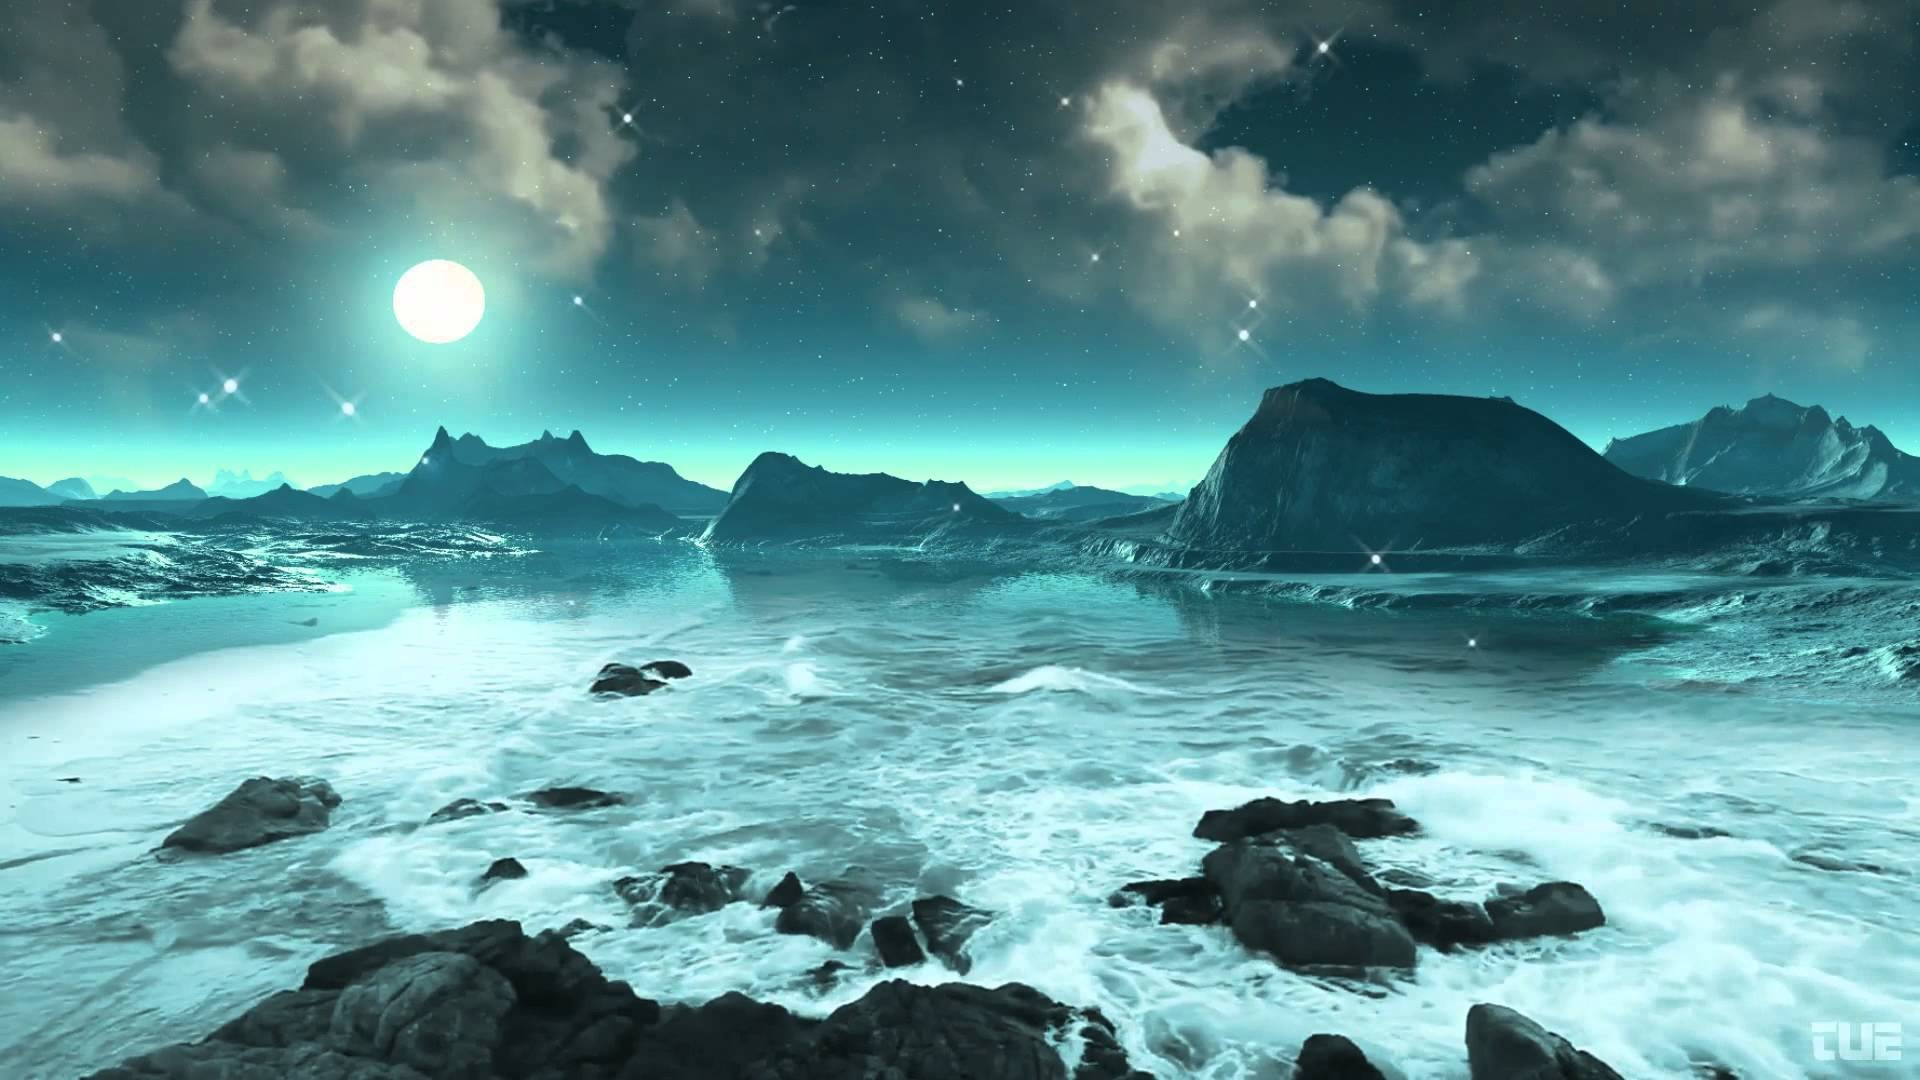 1920x1080 Moonlight, Stars And Ocean Waves 2 - Video Background HD 1080p - YouTube